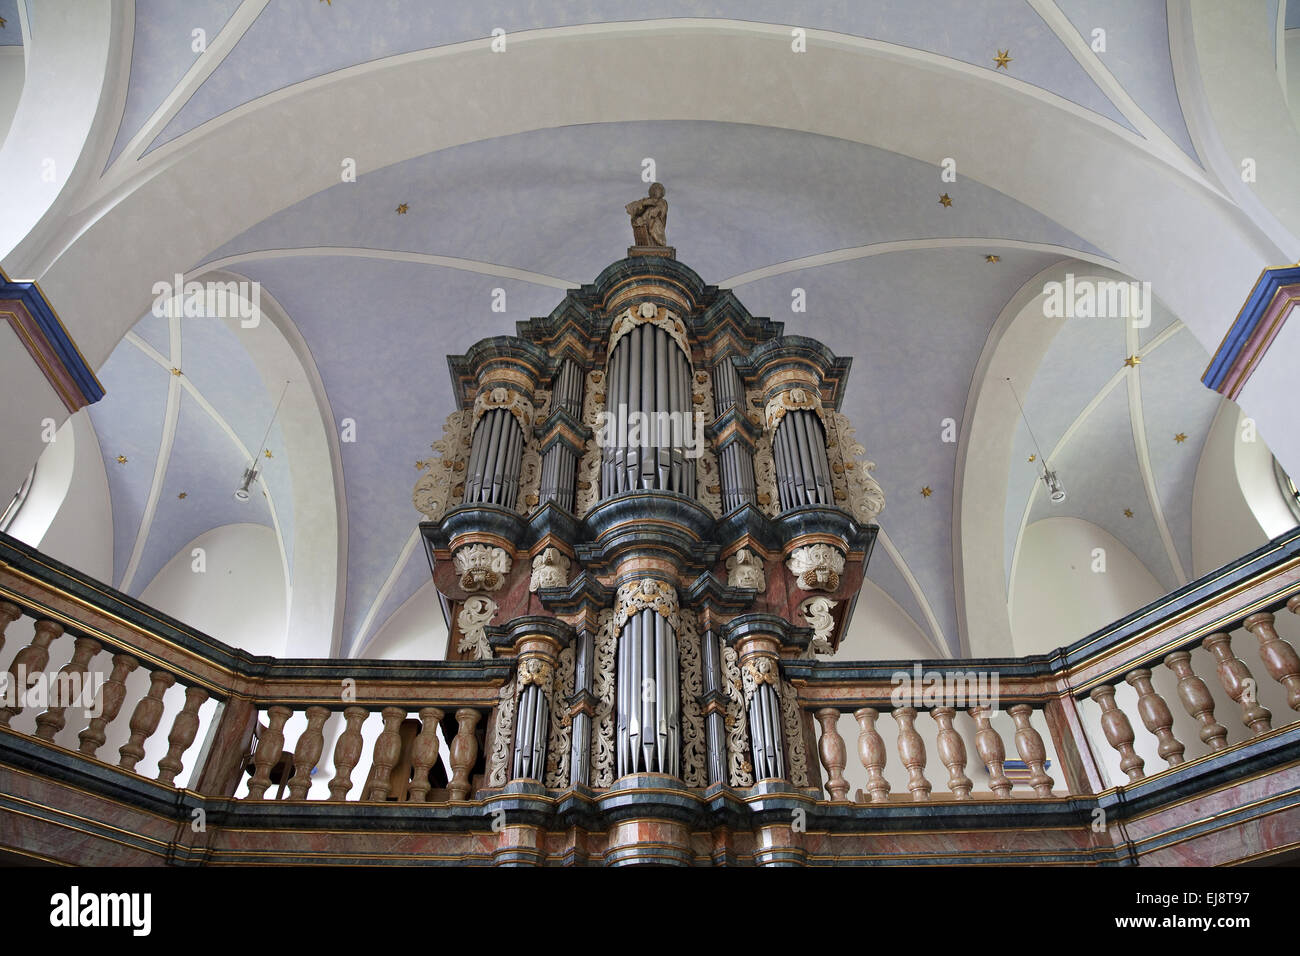 St. Pancras Church, Moehnesee, Germany - Stock Image